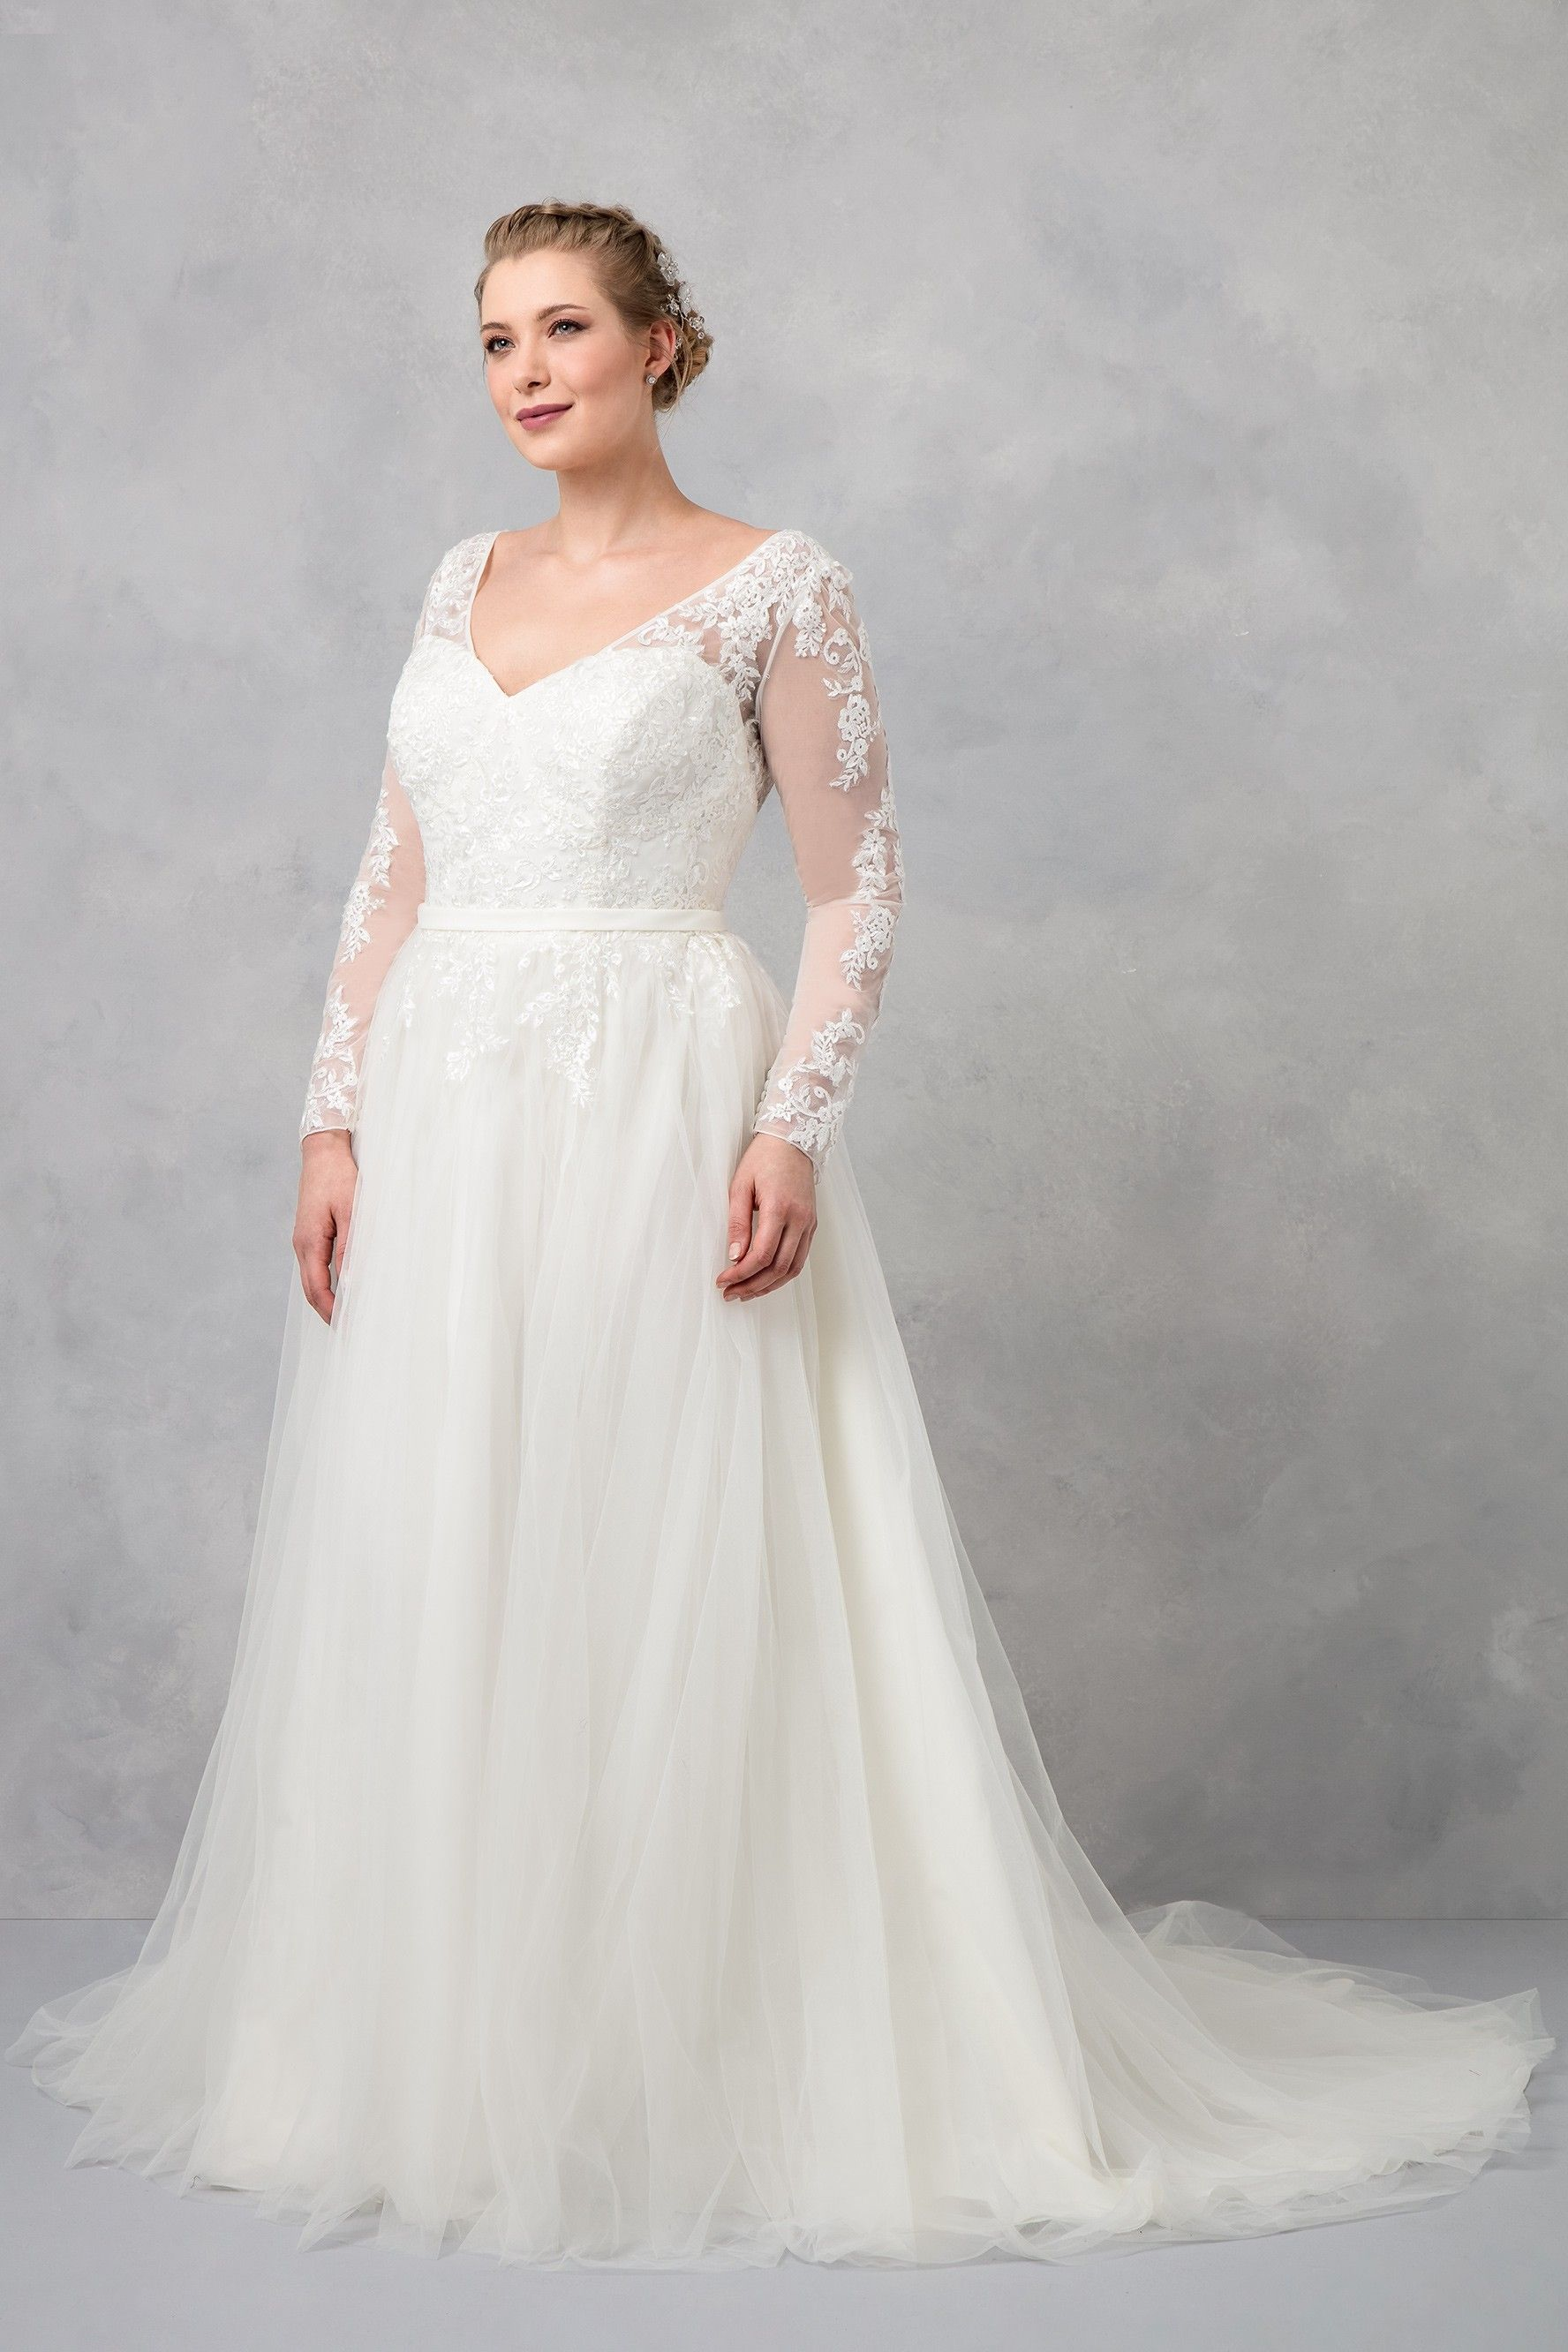 c8327c884aaf Plus Size Long Sleeve Wedding Dress With Low Back // Colour: Ivory //Style  No.: 9WG3831